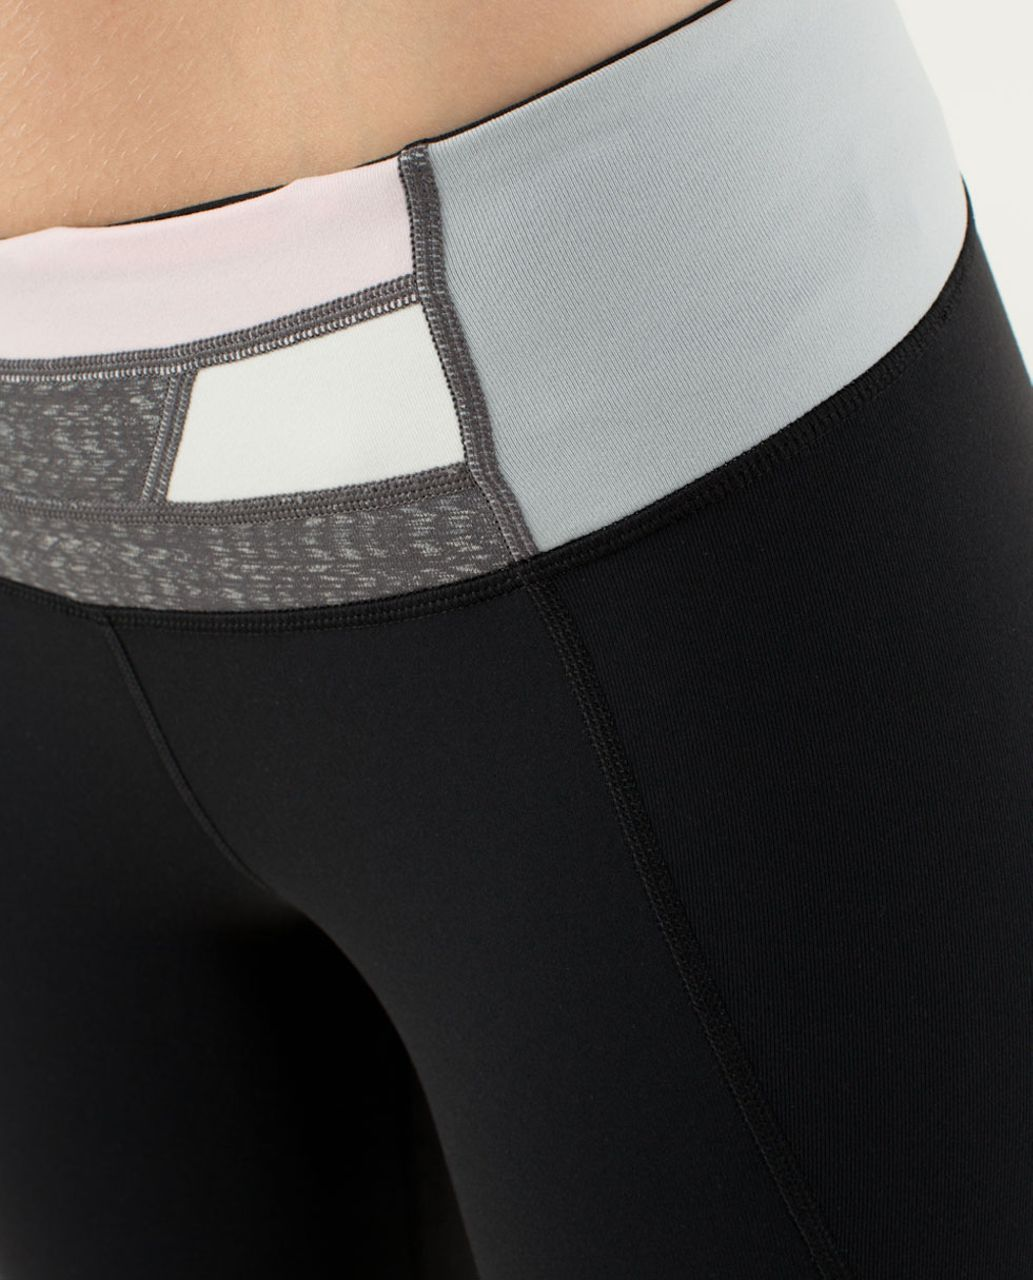 Lululemon Gather & Crow Crop - Black / Quilt 18 Fall 2013